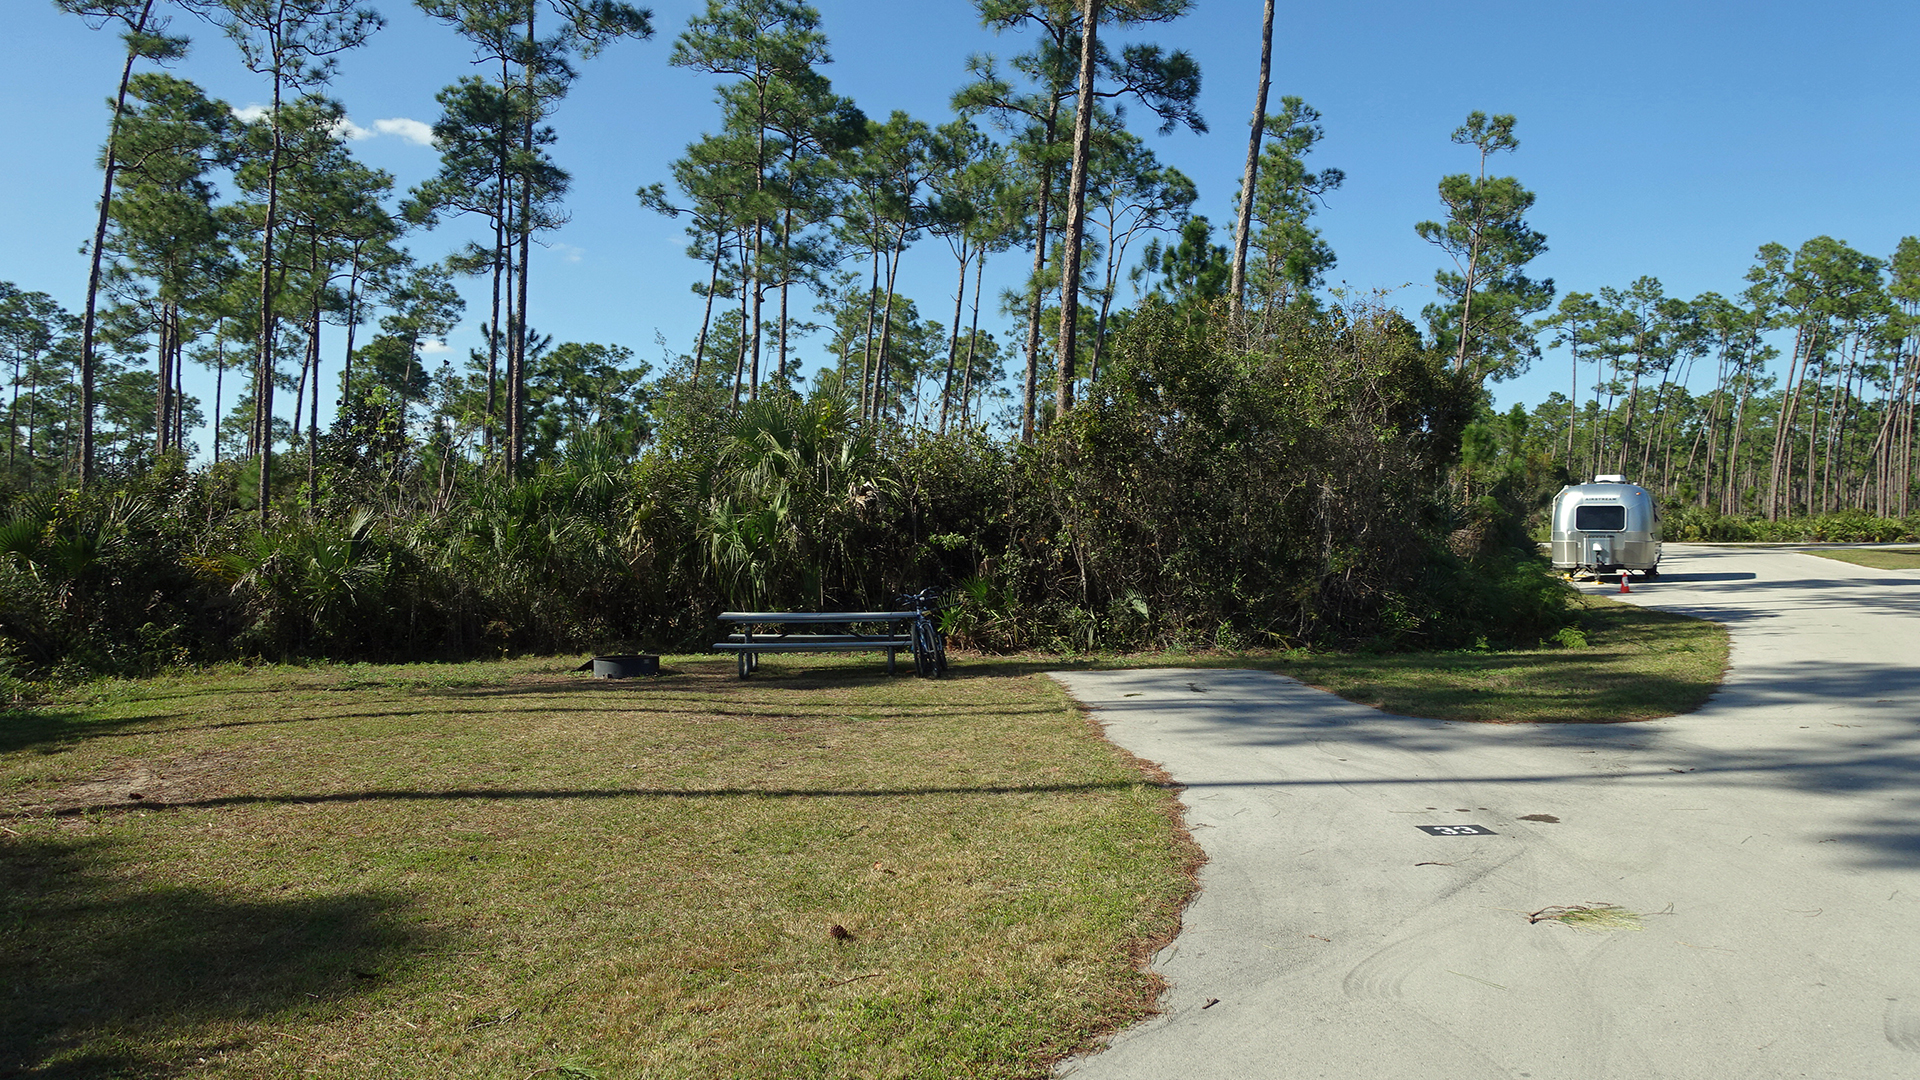 Long-Pine-Key-Campground-Everglades-National-Park-and-Airstream